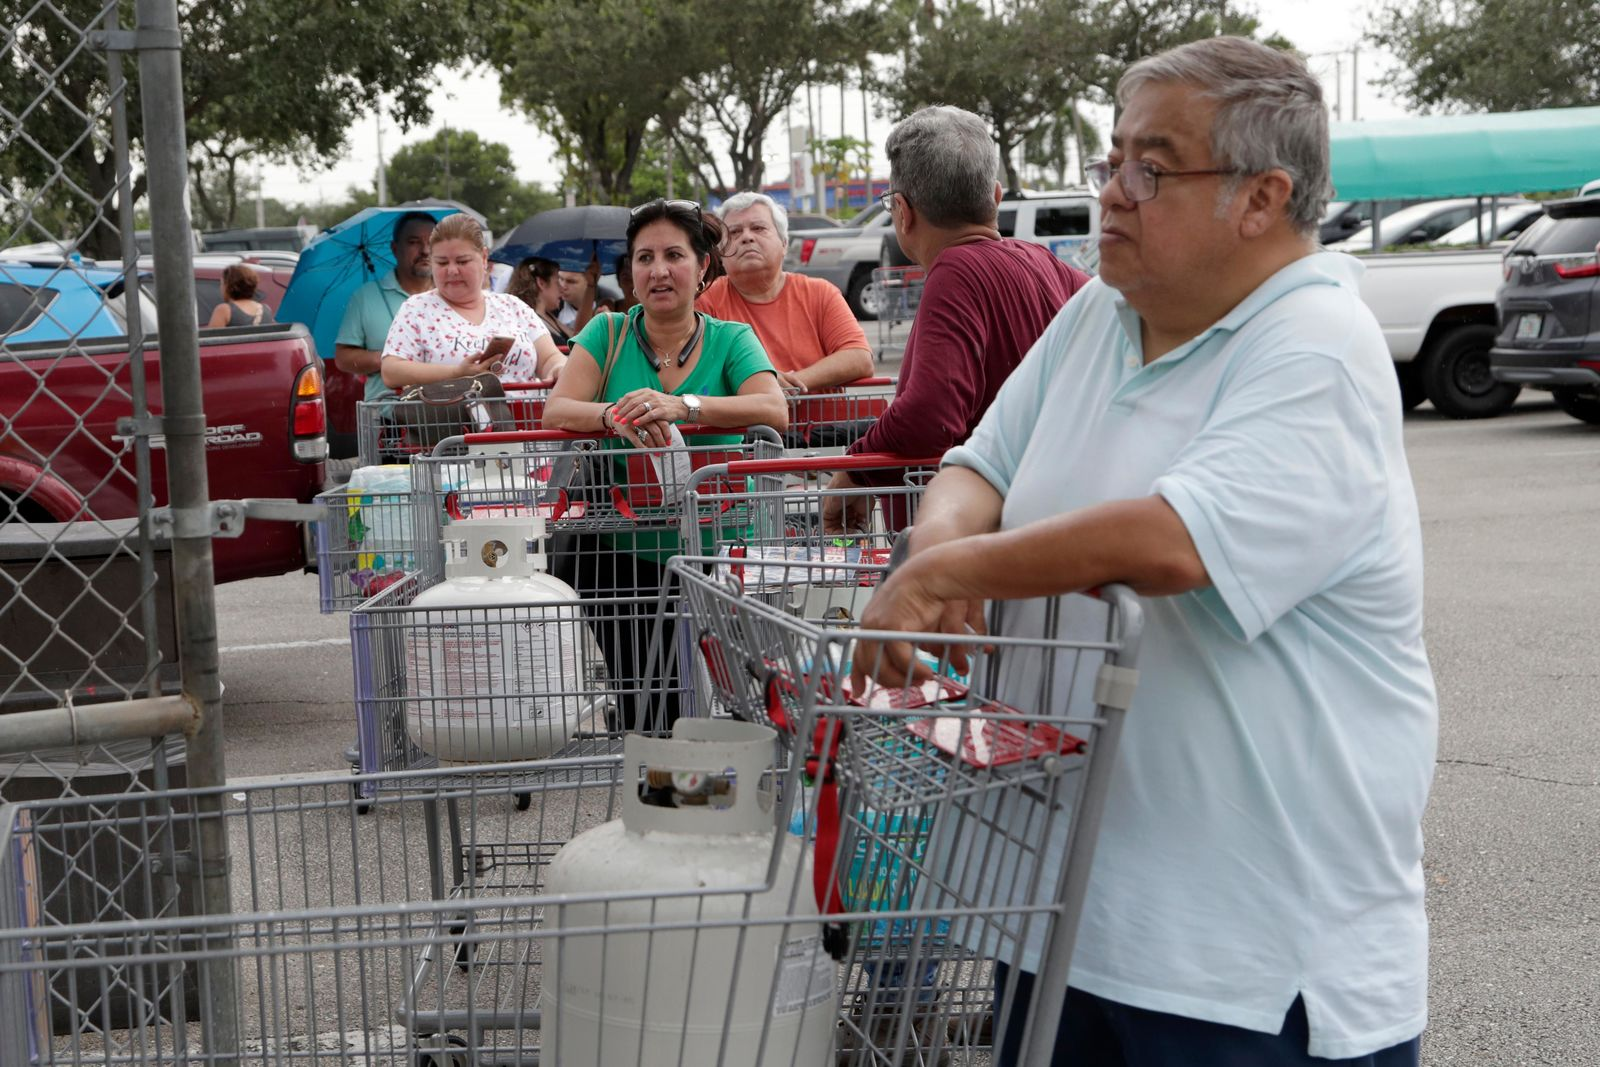 People stand in line for propane fuel at BJ's Wholesale Club in preparation for Hurricane Dorian, Thursday, Aug. 29, 2019, in Hialeah, Fla. (AP Photo/Lynne Sladky)